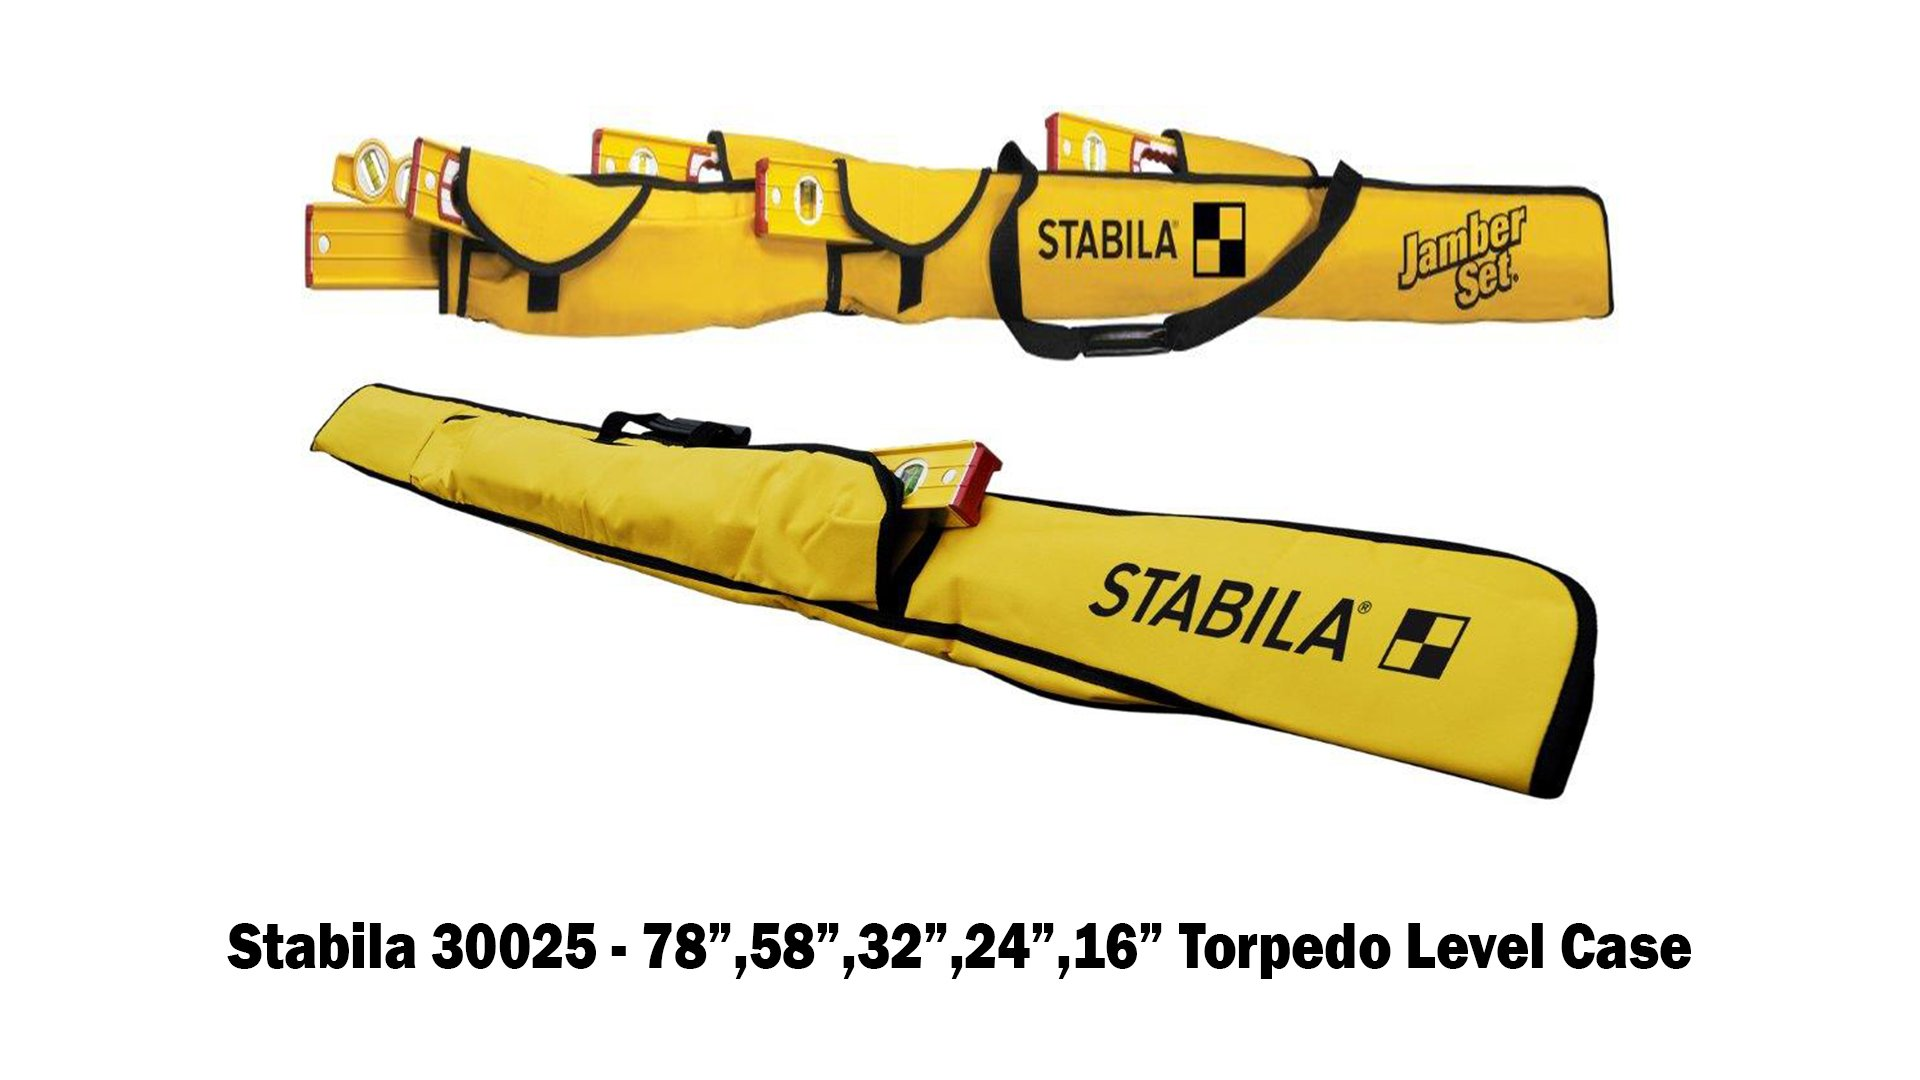 Stabila 196 Level Set Kit - 78''/58''/32''/24''/16'' Torpedo and Case by Stabila (Image #8)